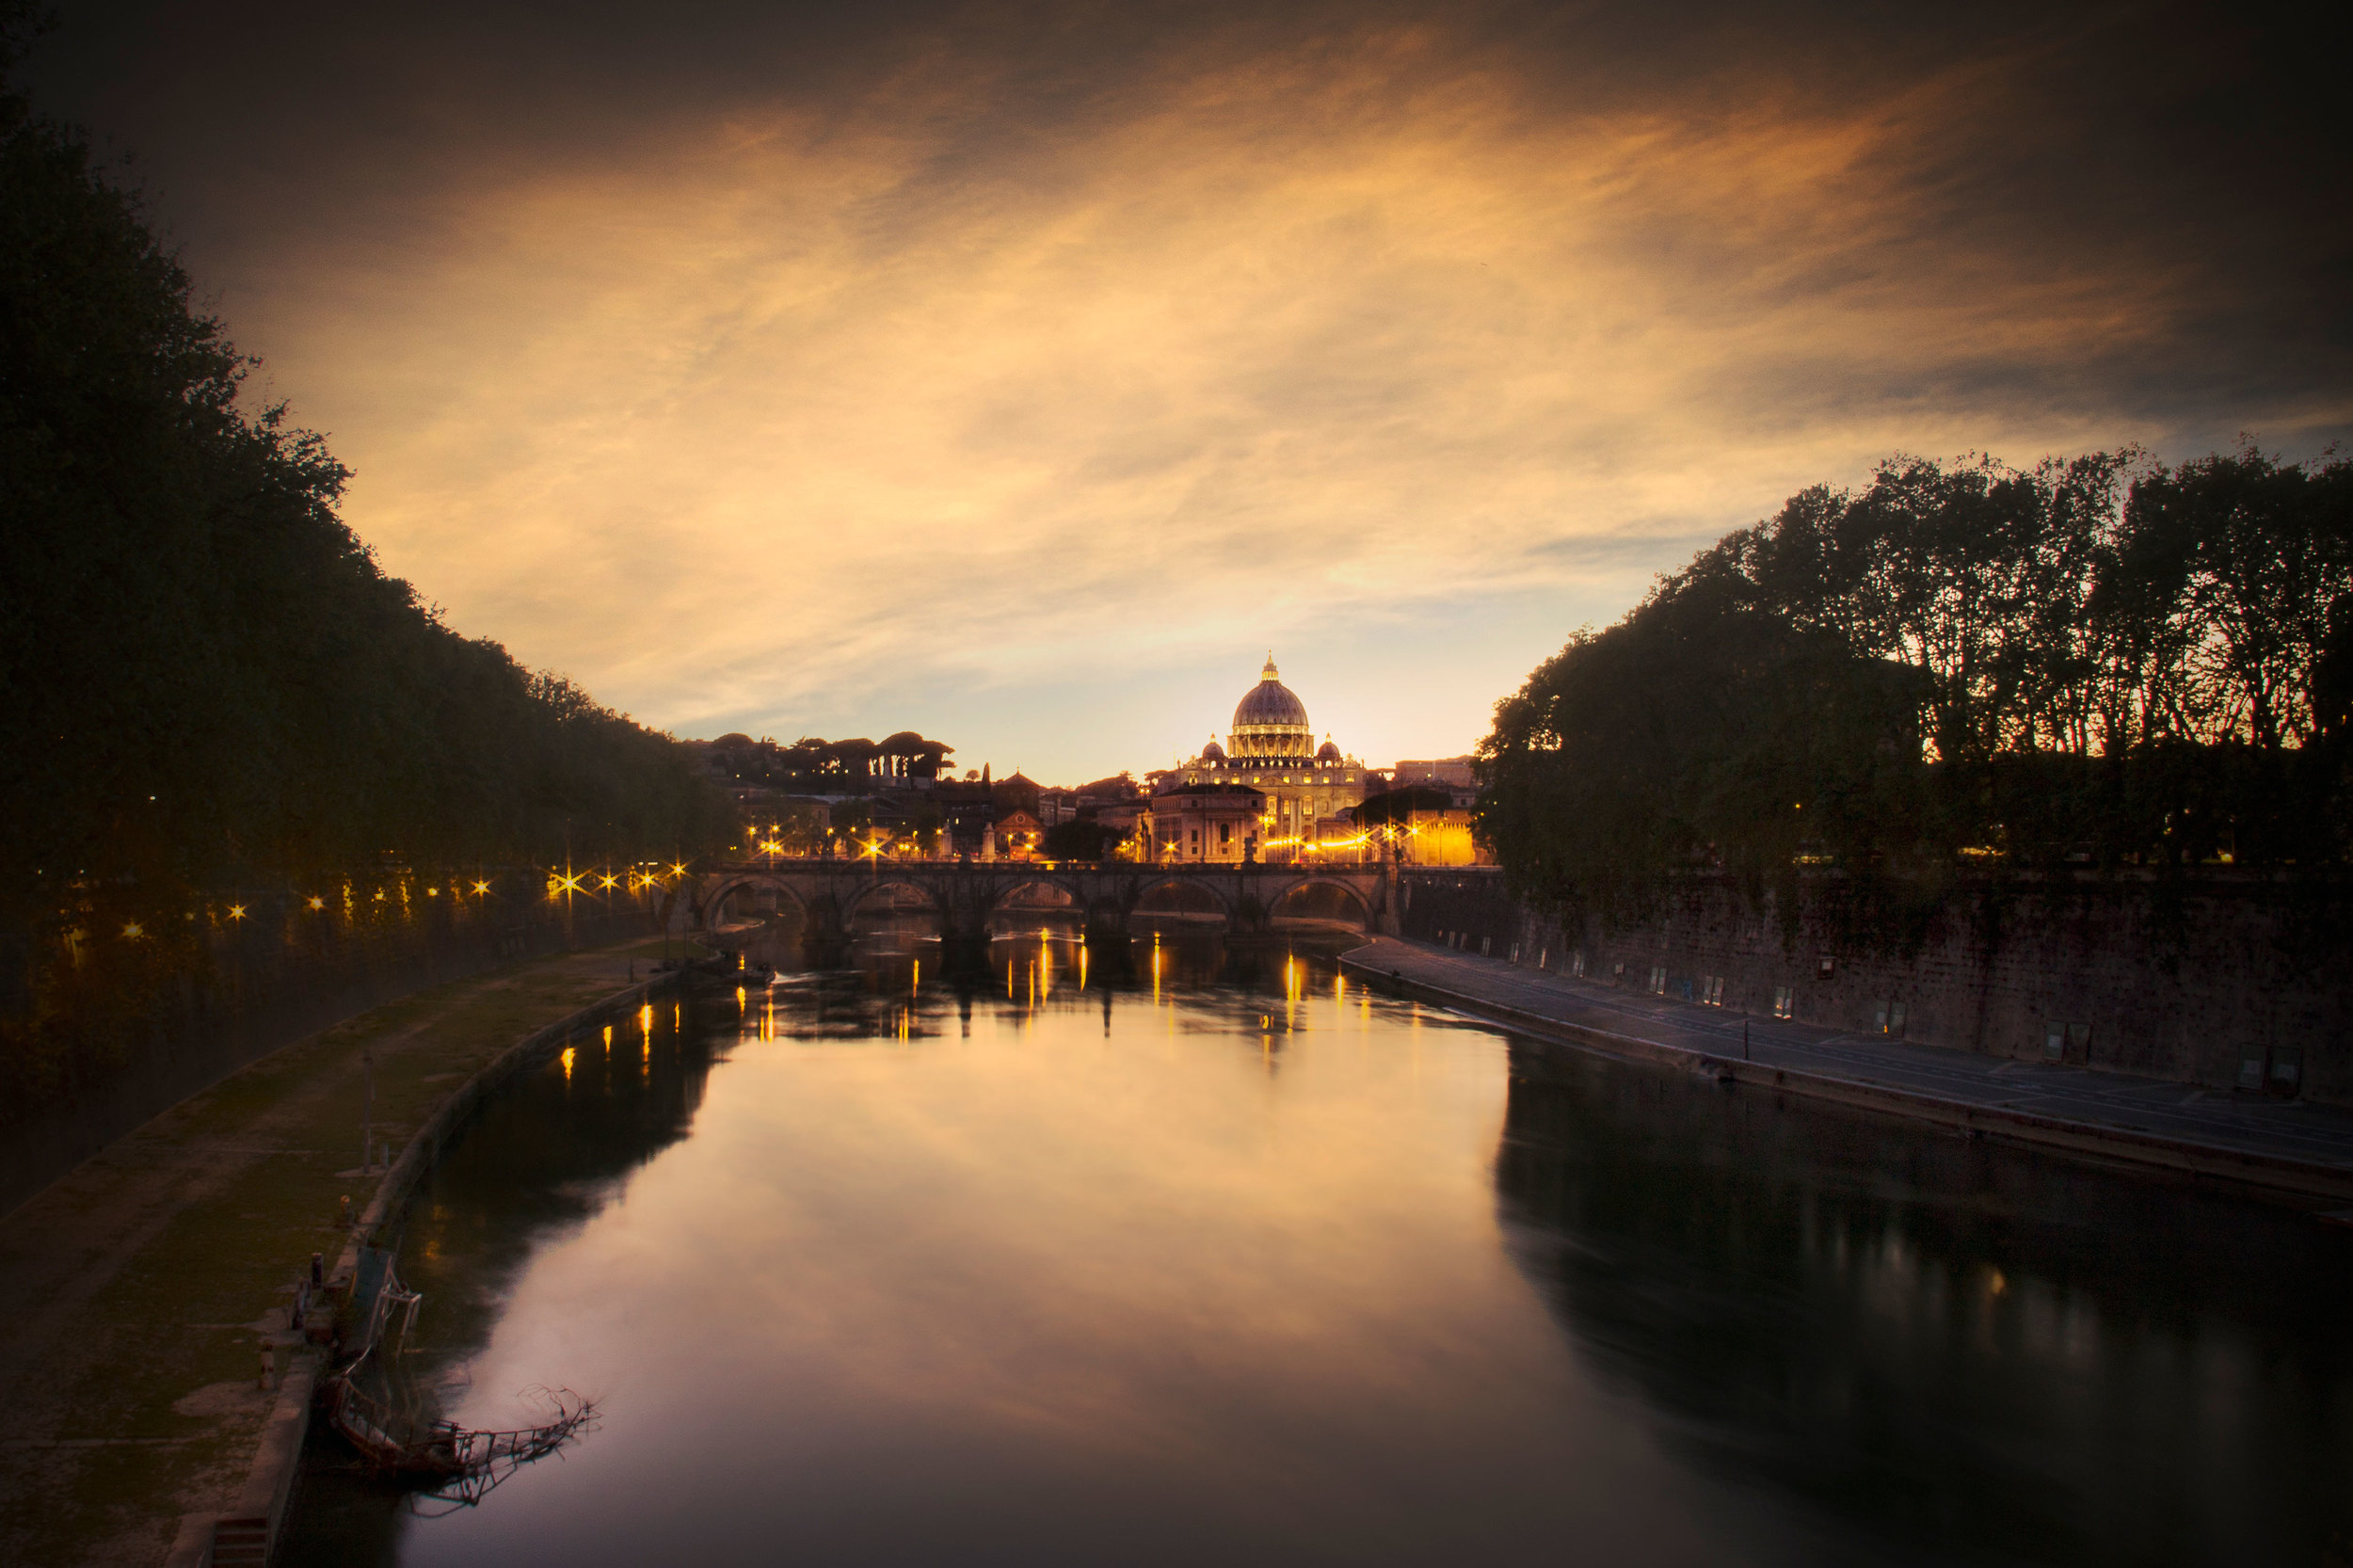 Tiber River - Long Exposure